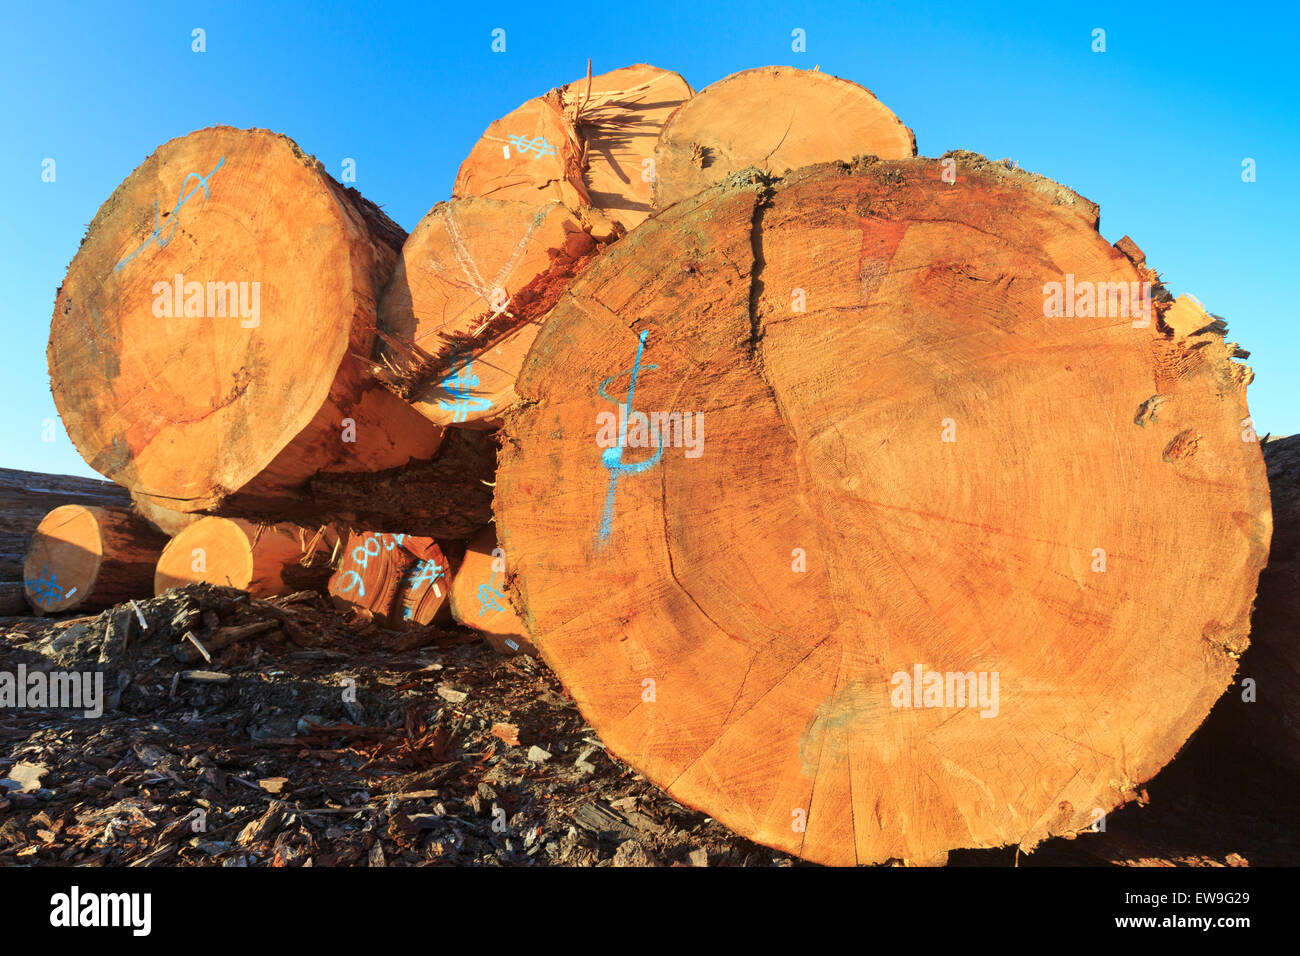 Large sized old growth logs in log sorting yard, Nanaimo, British Columbia - Stock Image